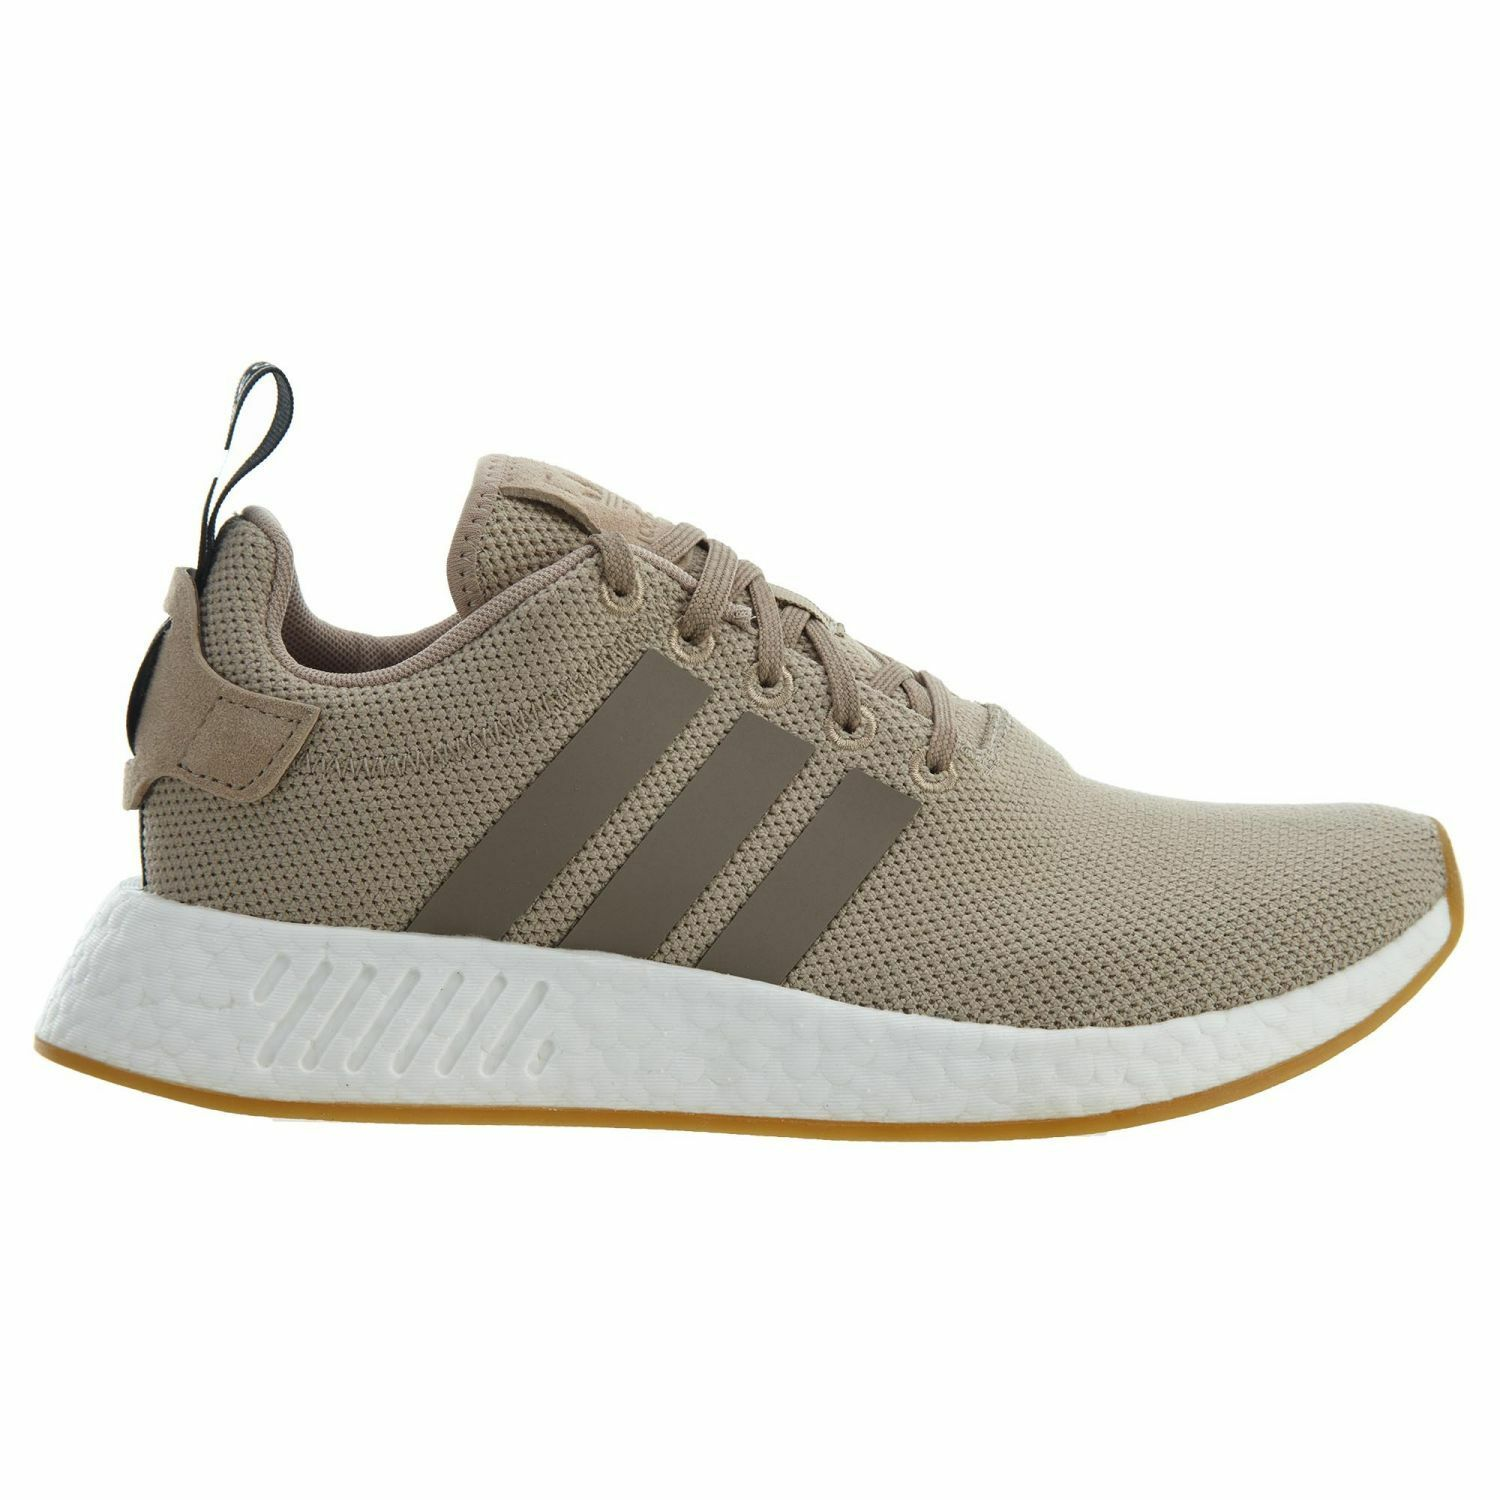 Adidas NMD_R2 Mens BY9916 Trace Khaki Brown Knit Boost Running Shoes Size 12